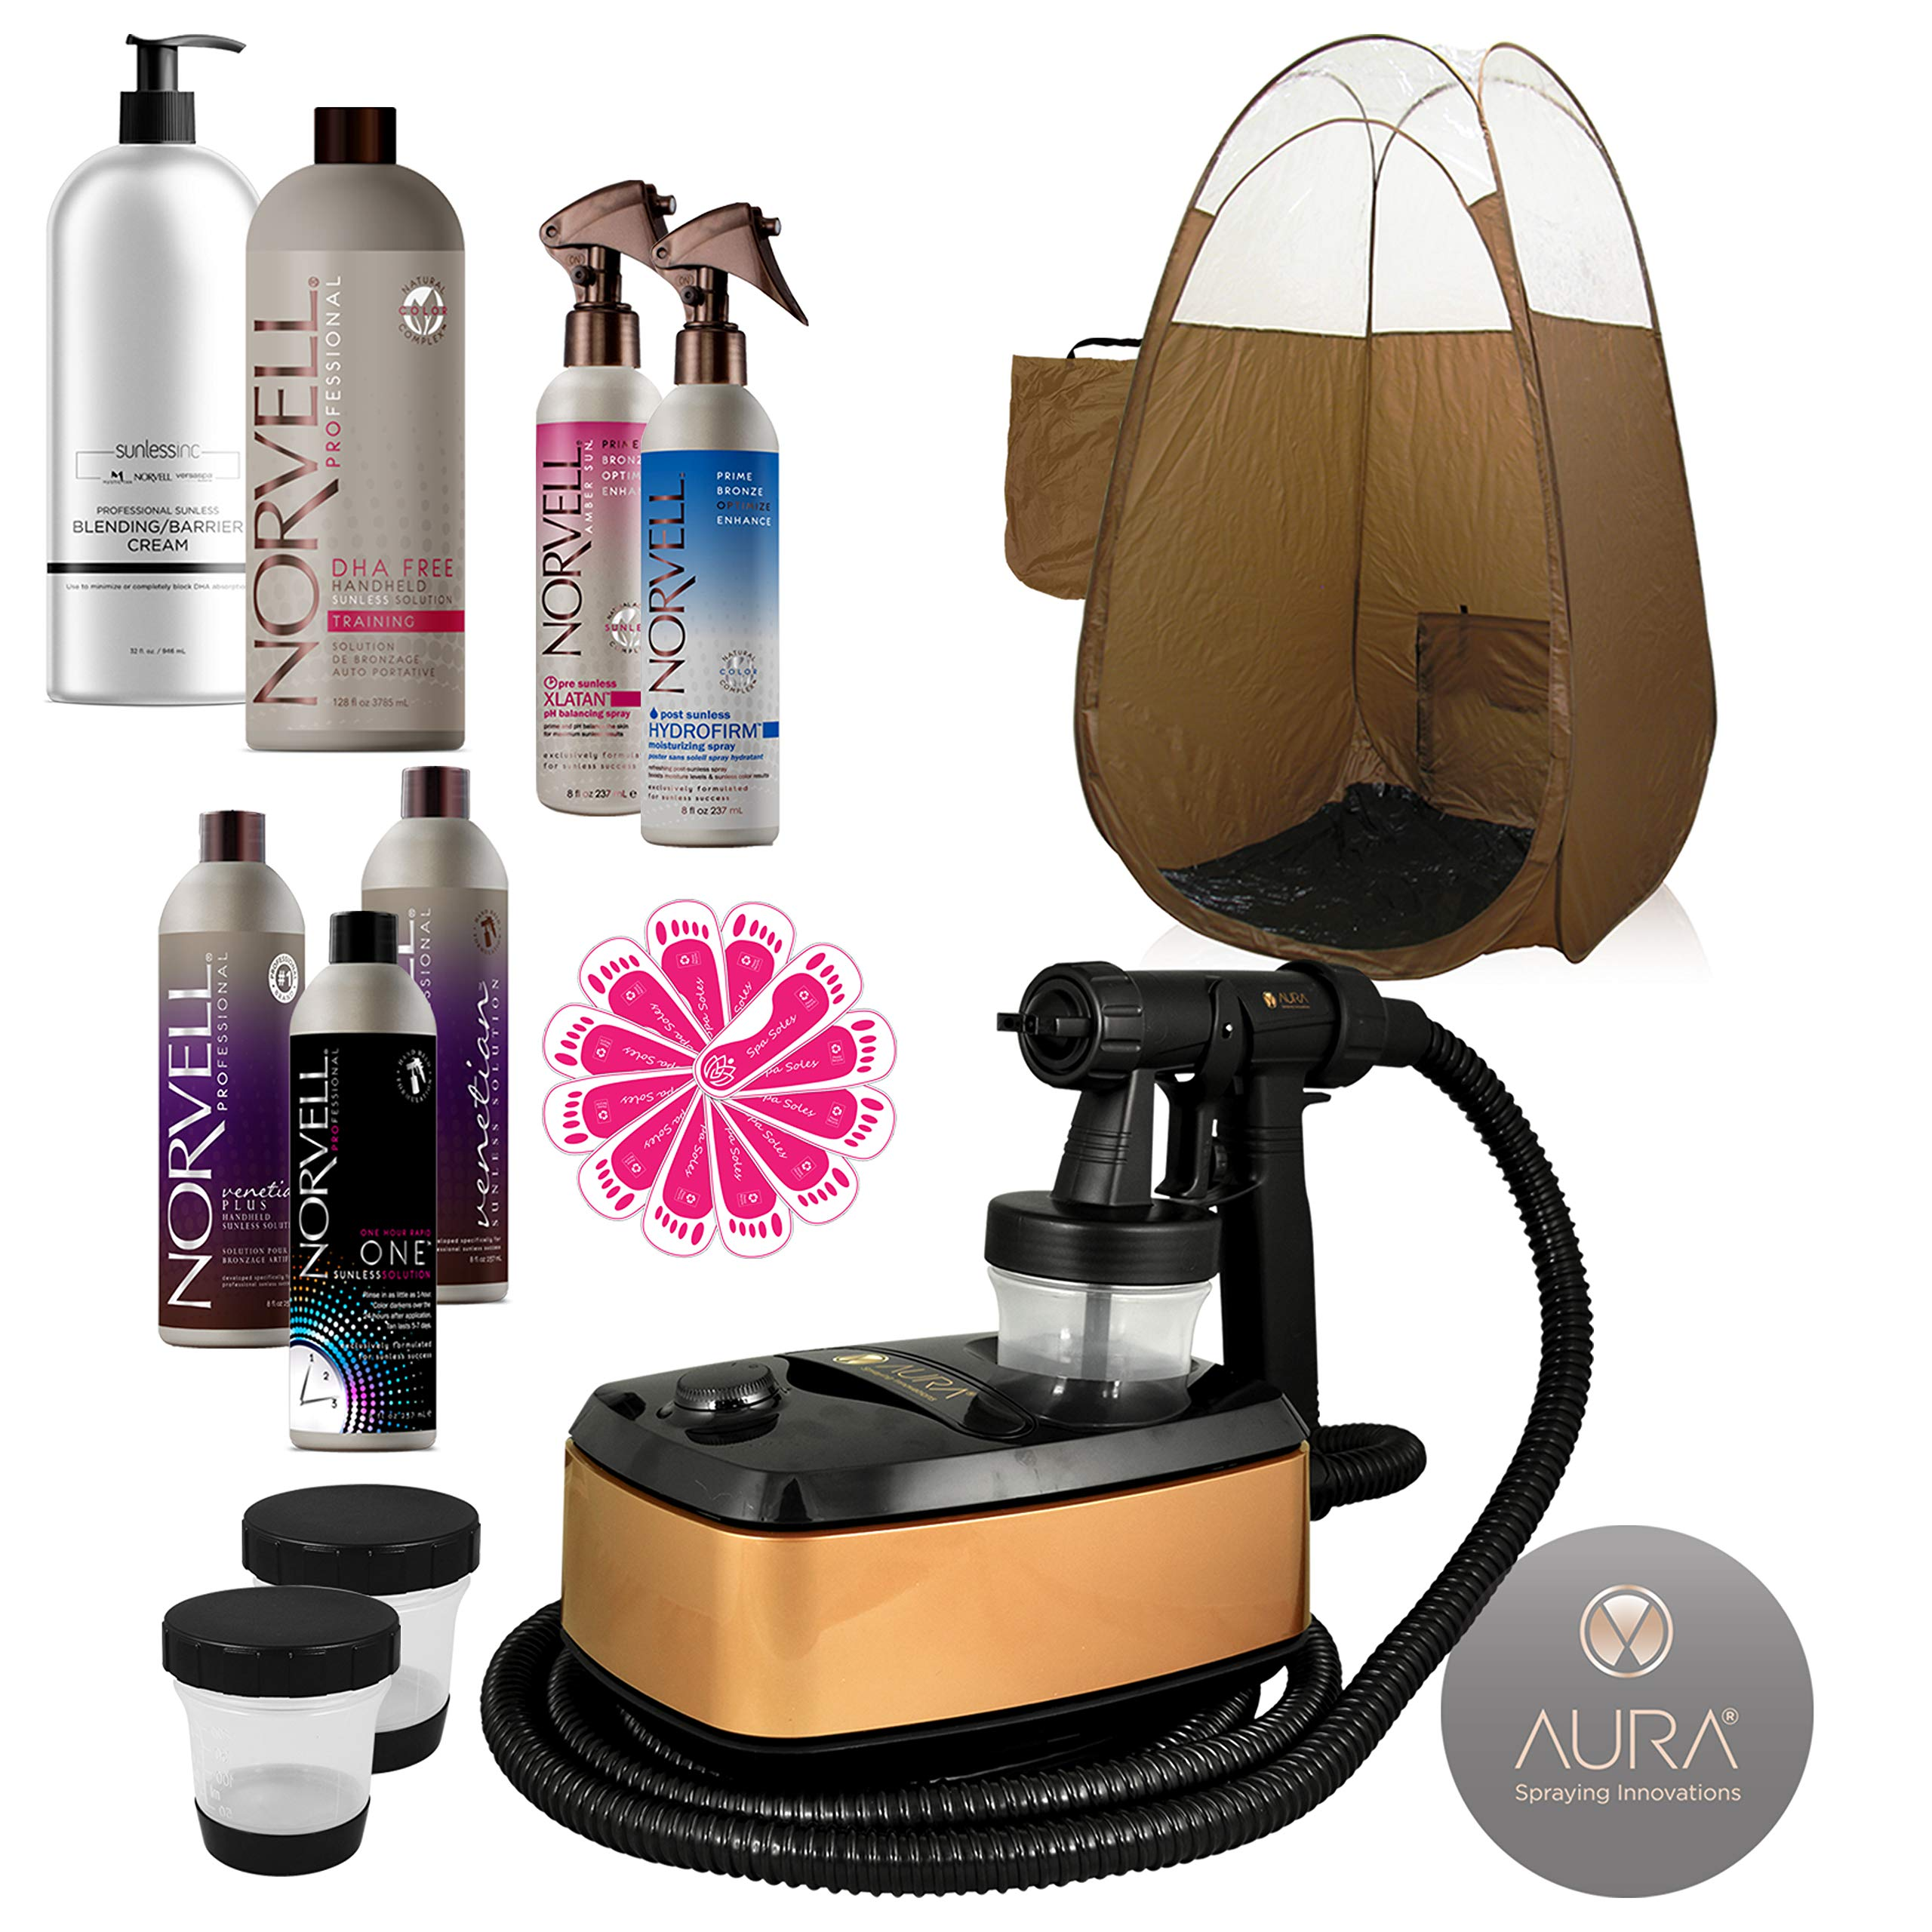 Aura Allure Spray Tanning Machine System with Norvell Airbrush Tan Solution Sunless Pro Kit Bundle and Bronze Pop Up Tent